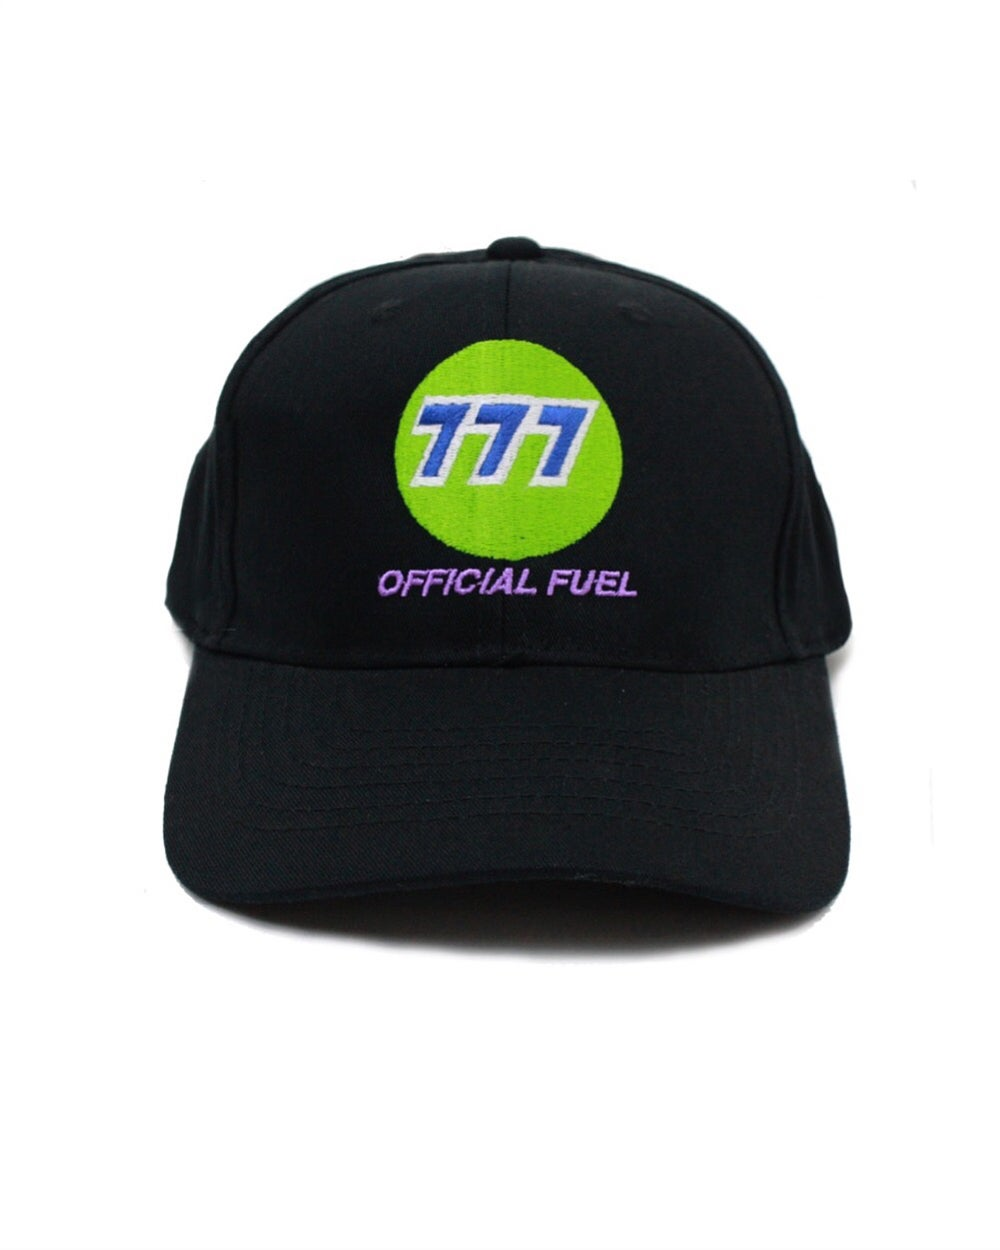 Image of 777 STATION CAP